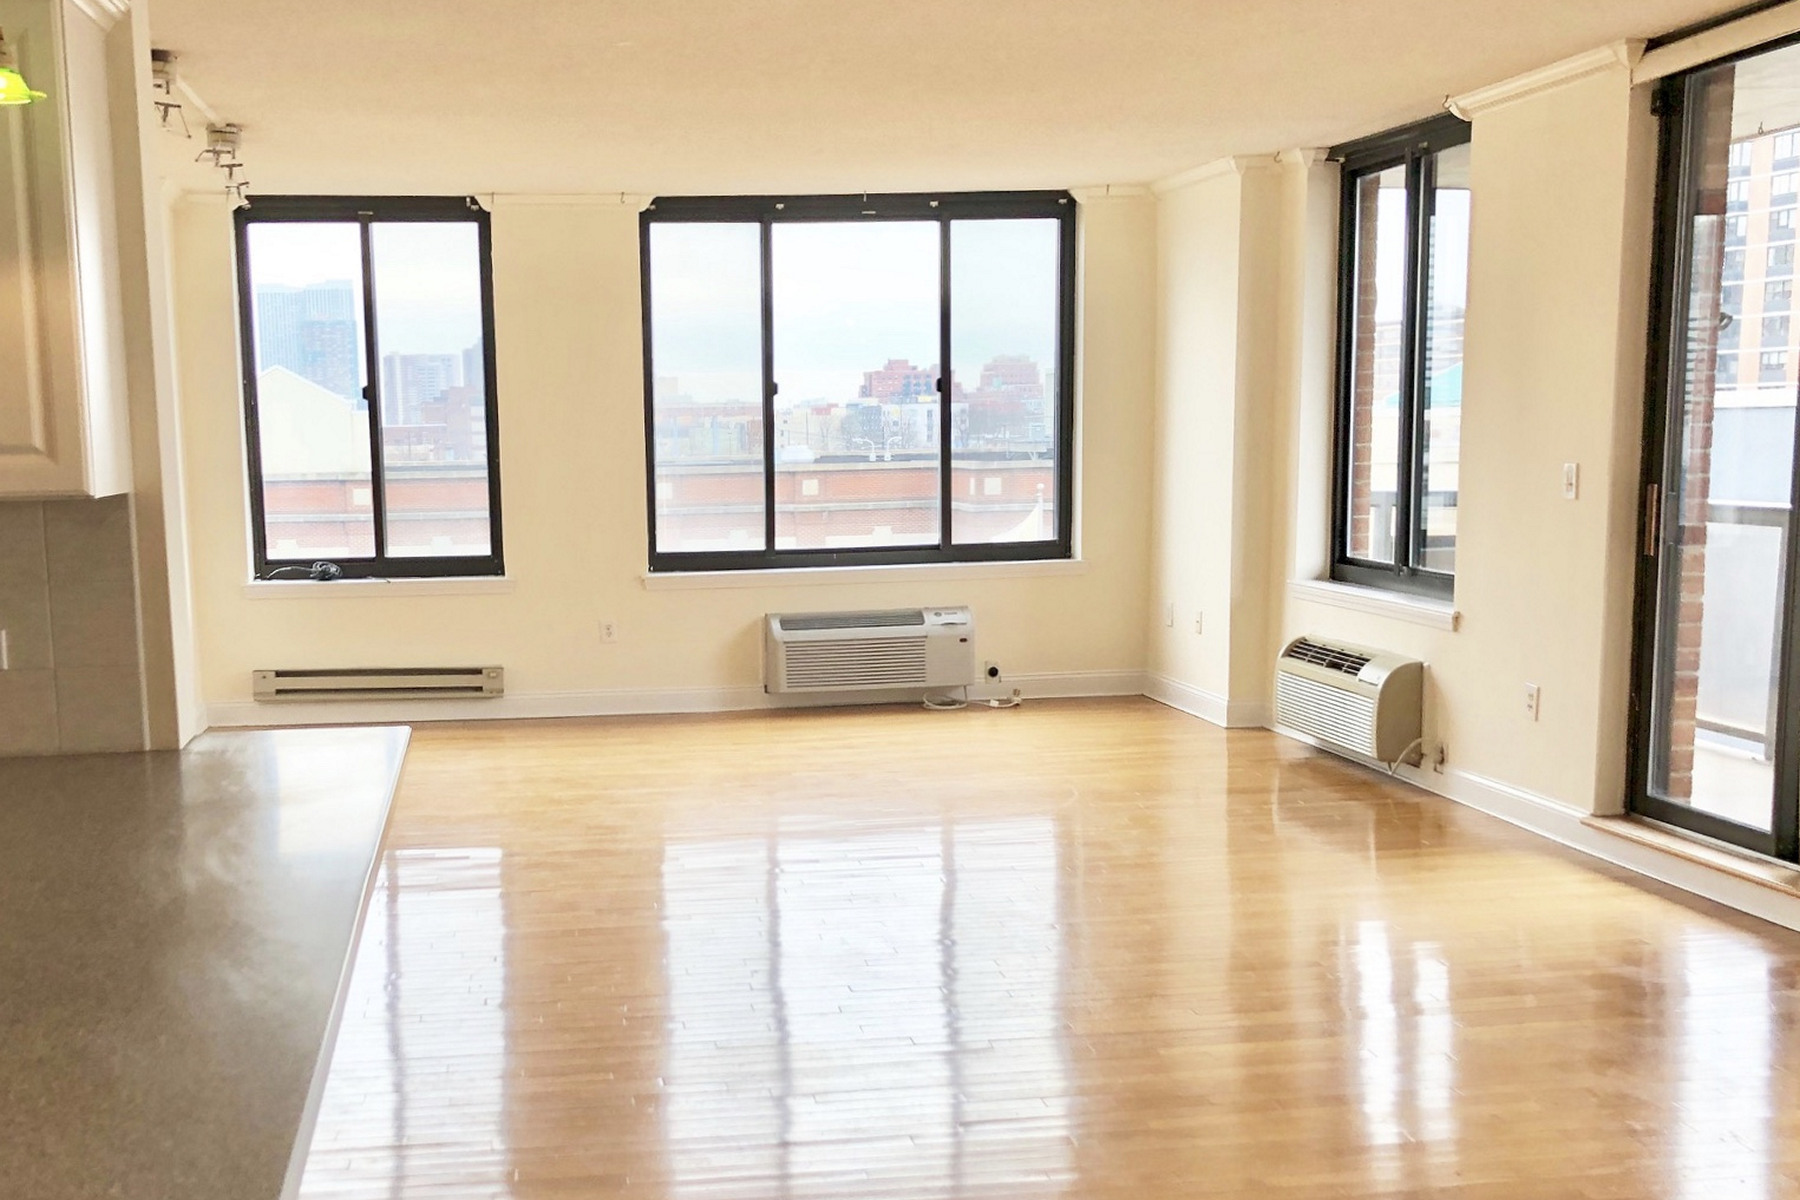 Apartment for Rent at Super spacious 1490 sqft 2 bed, 2 bath in a modern elevator building 415 Newark Street #4E, Hoboken, New Jersey 07030 United States